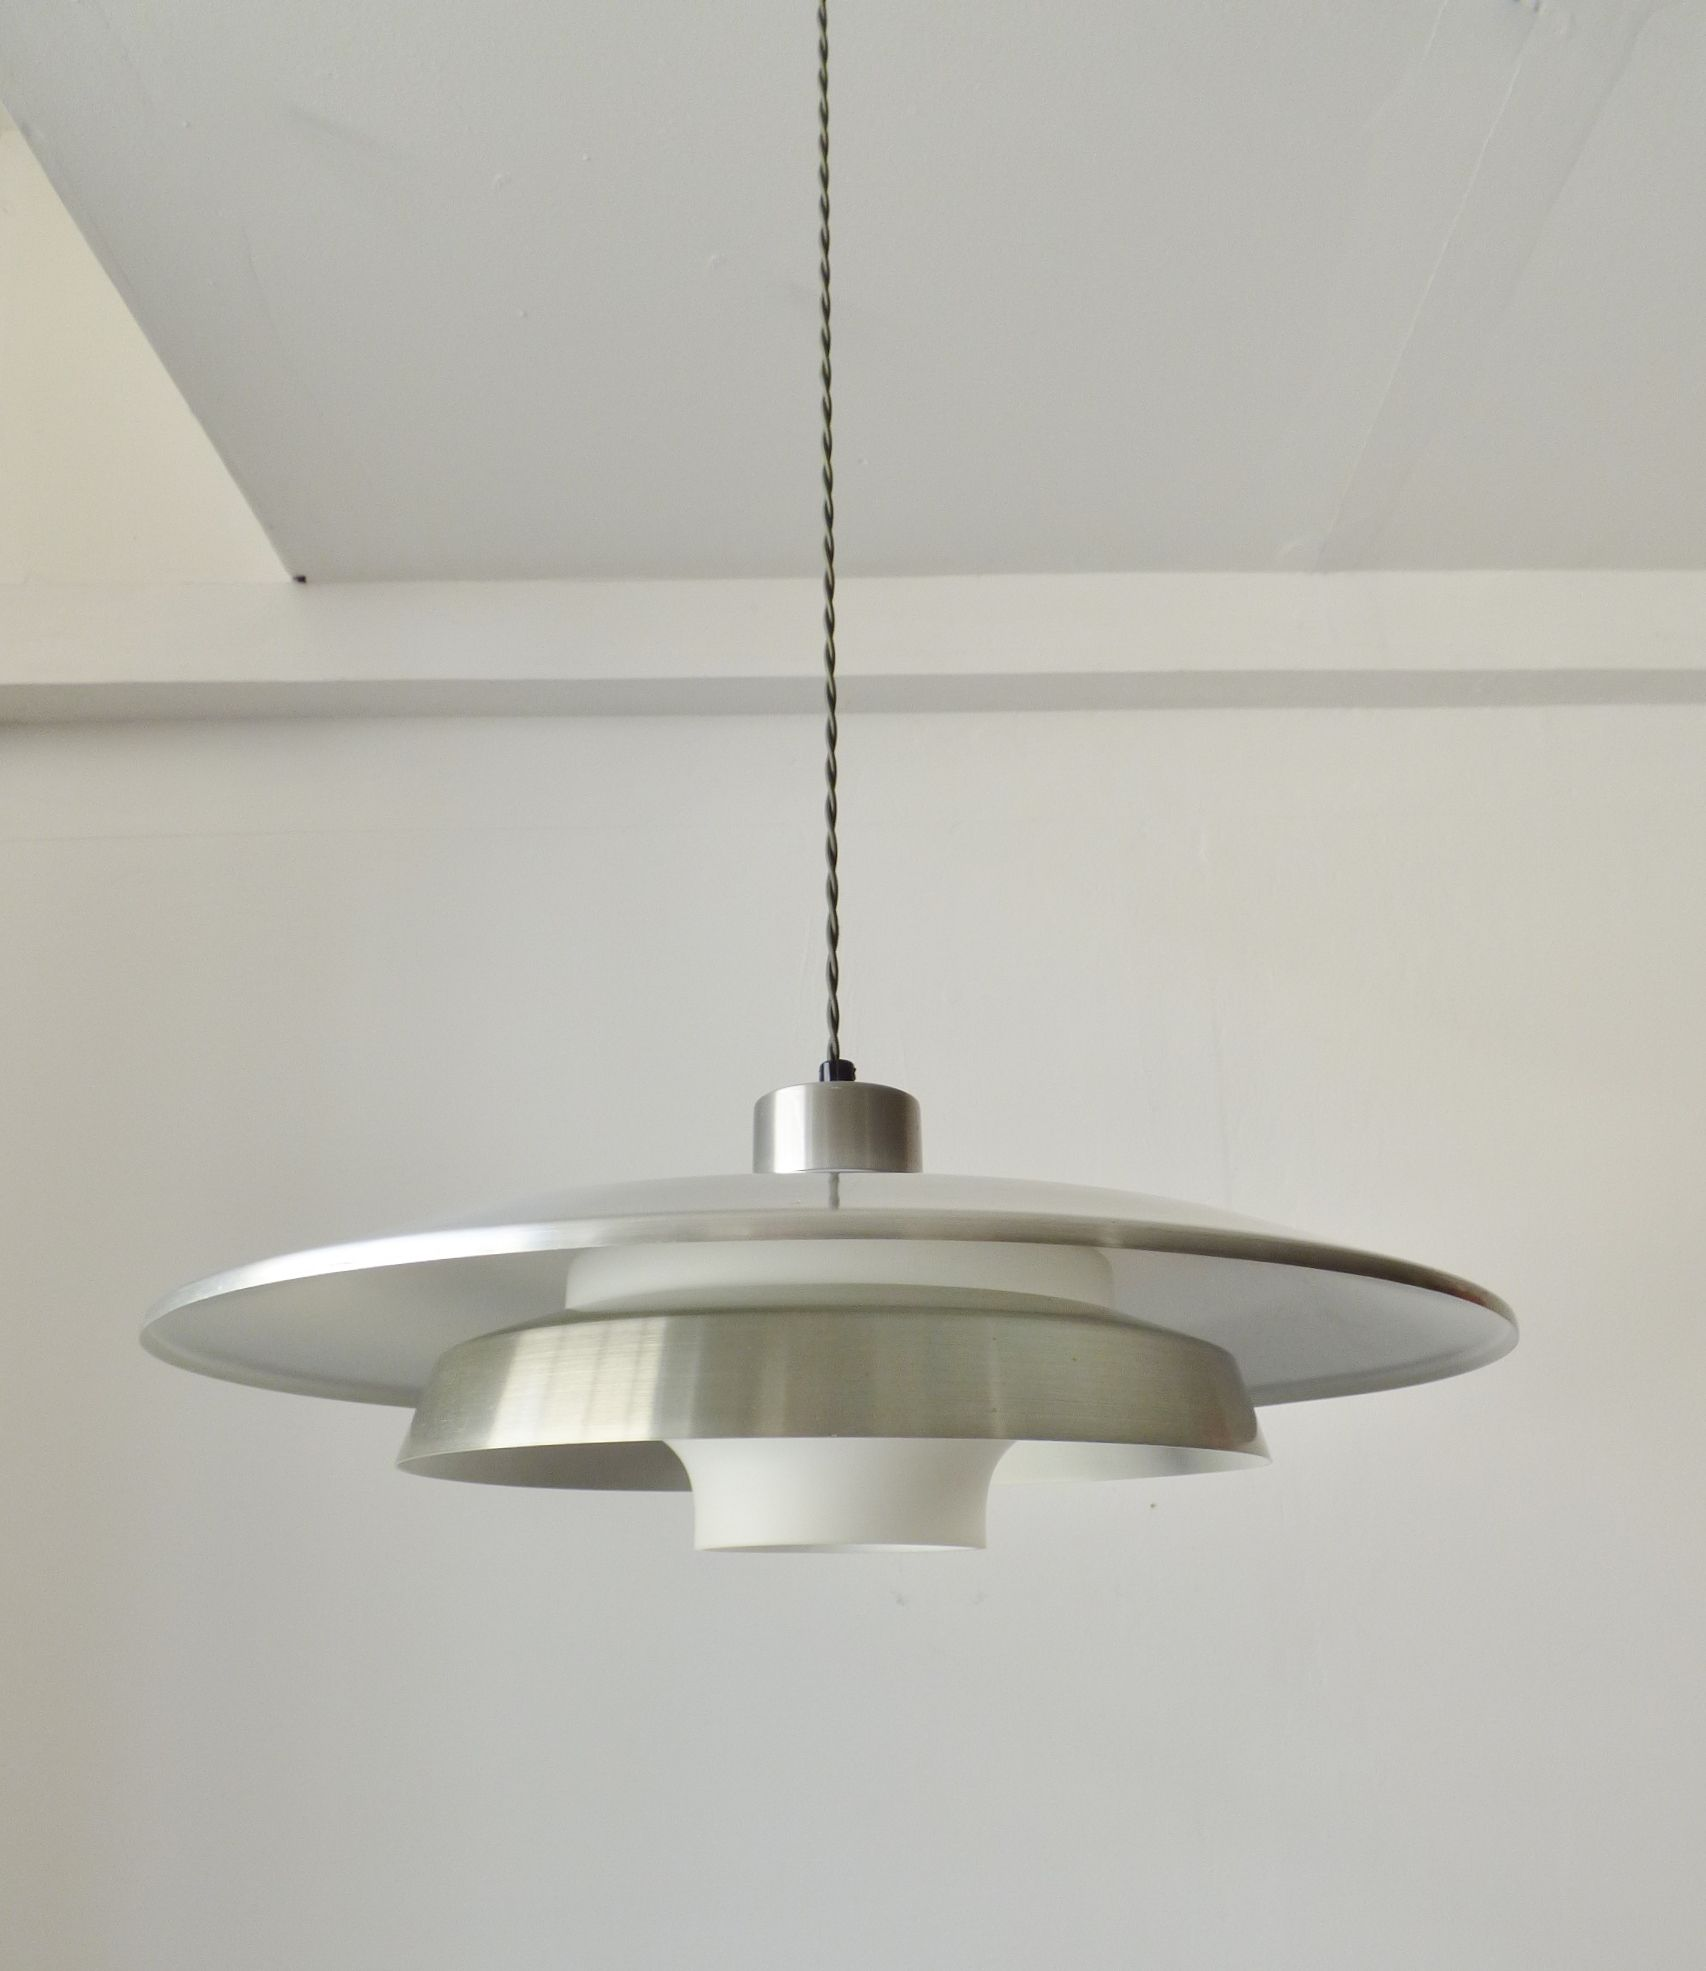 Scandinavian light fixtures best 20 scandinavian lighting ideas on scandinavian light fixtures 1960s scandinavian glass and aluminium pendant light vintage arubaitofo Image collections